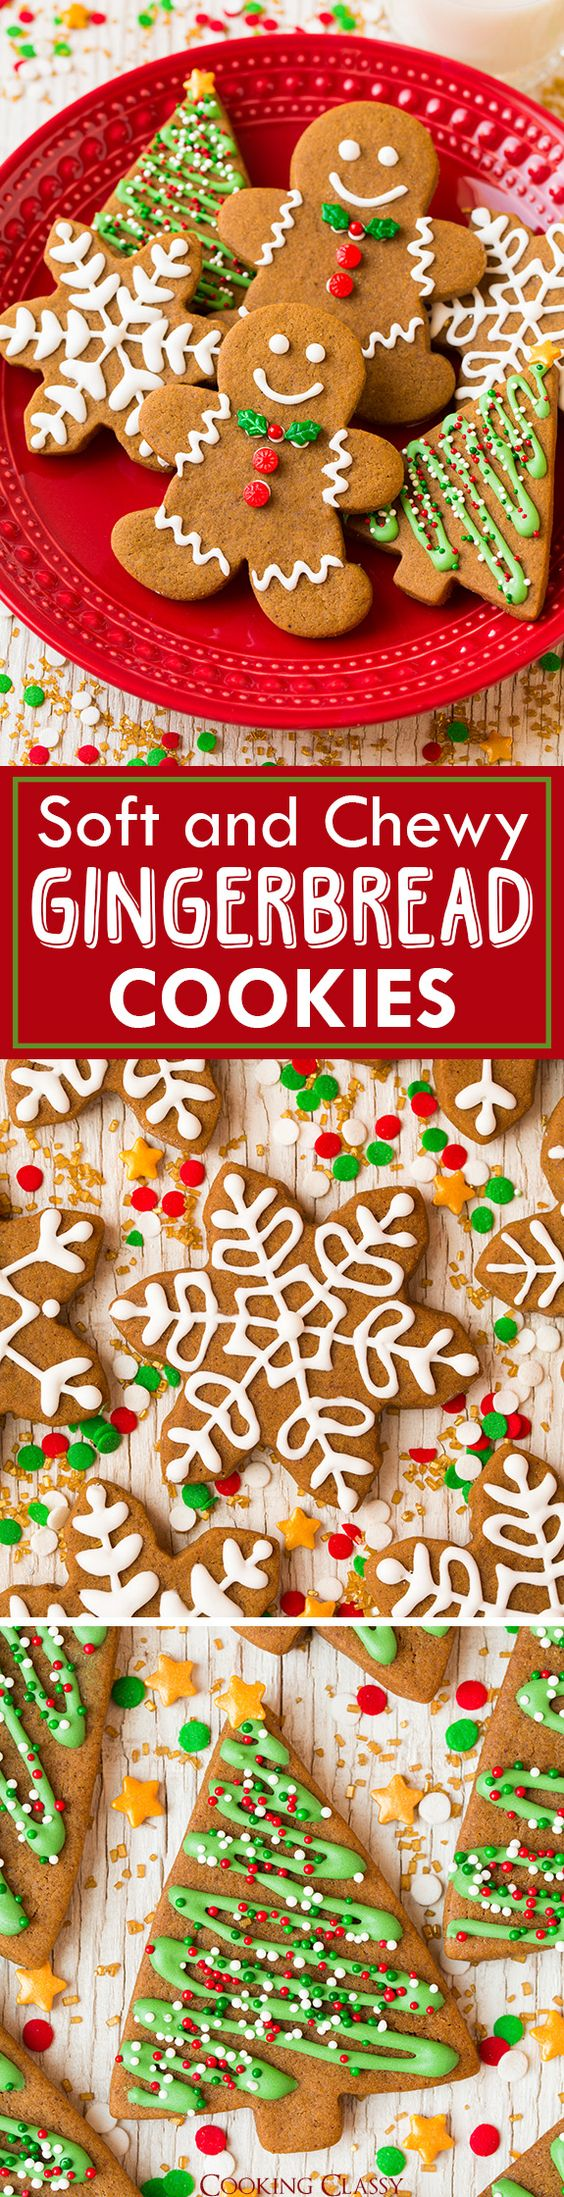 Gingerbread Cookies - a Christmas cookie must! Soft, gingery and utterly delicious!! Even better the second day.: